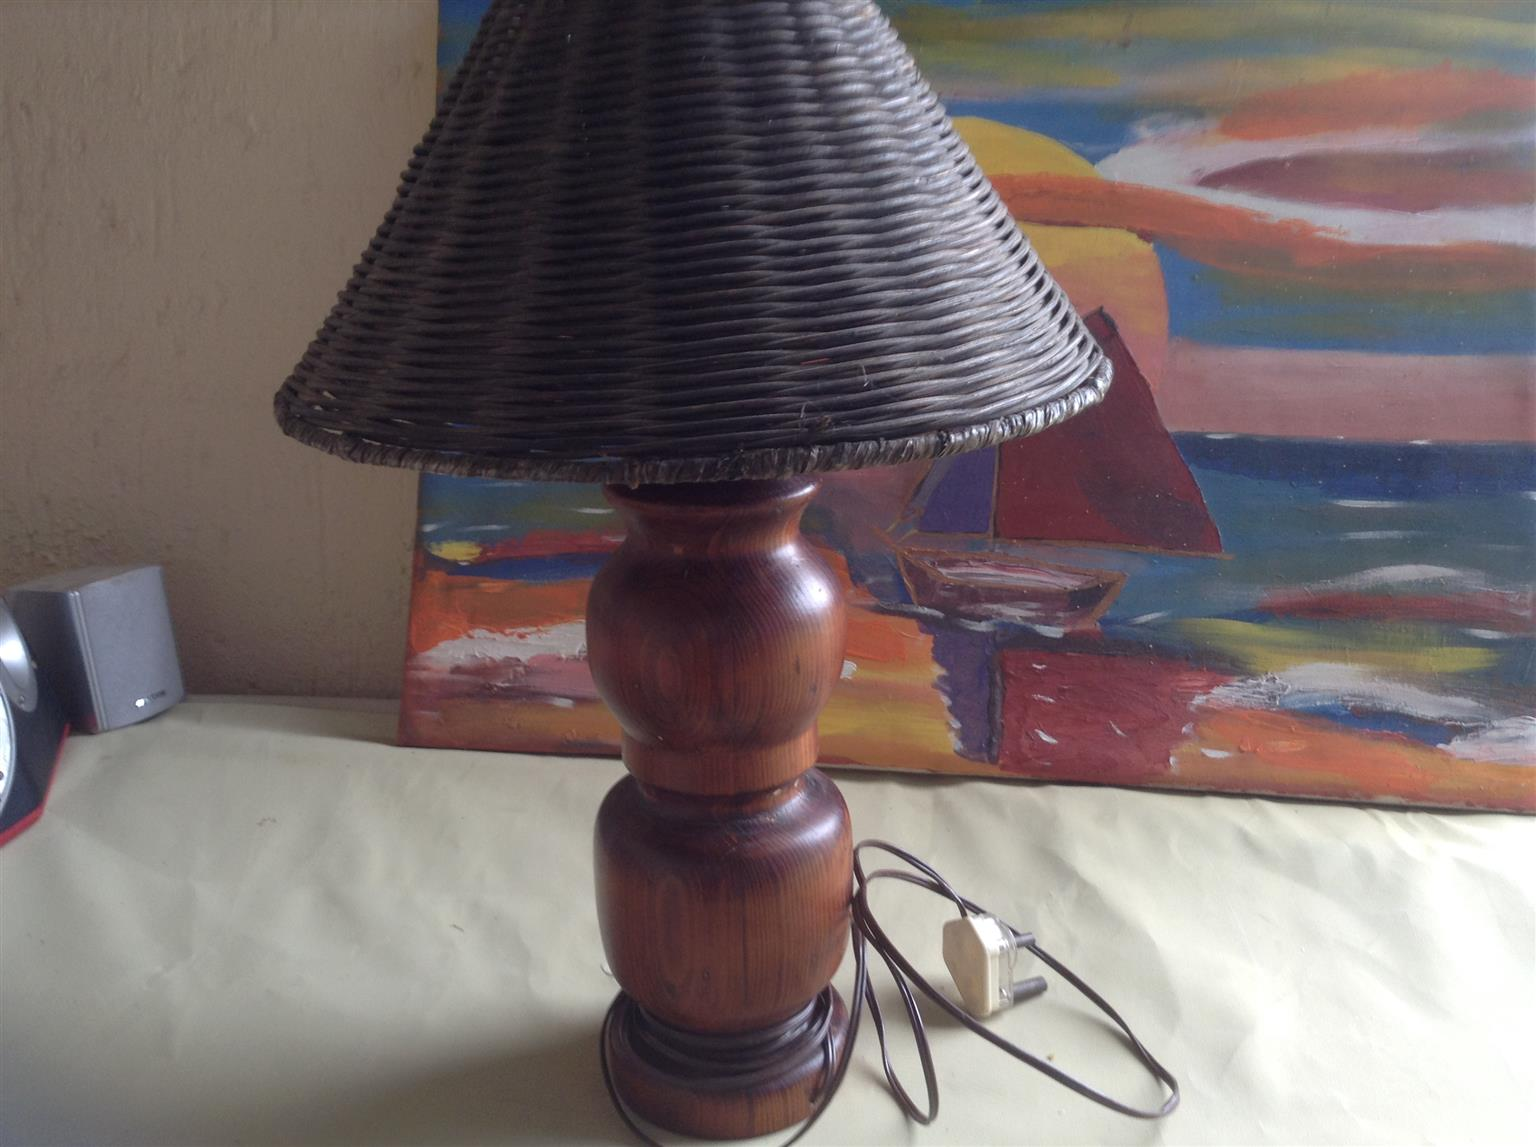 Large desk or table lamp